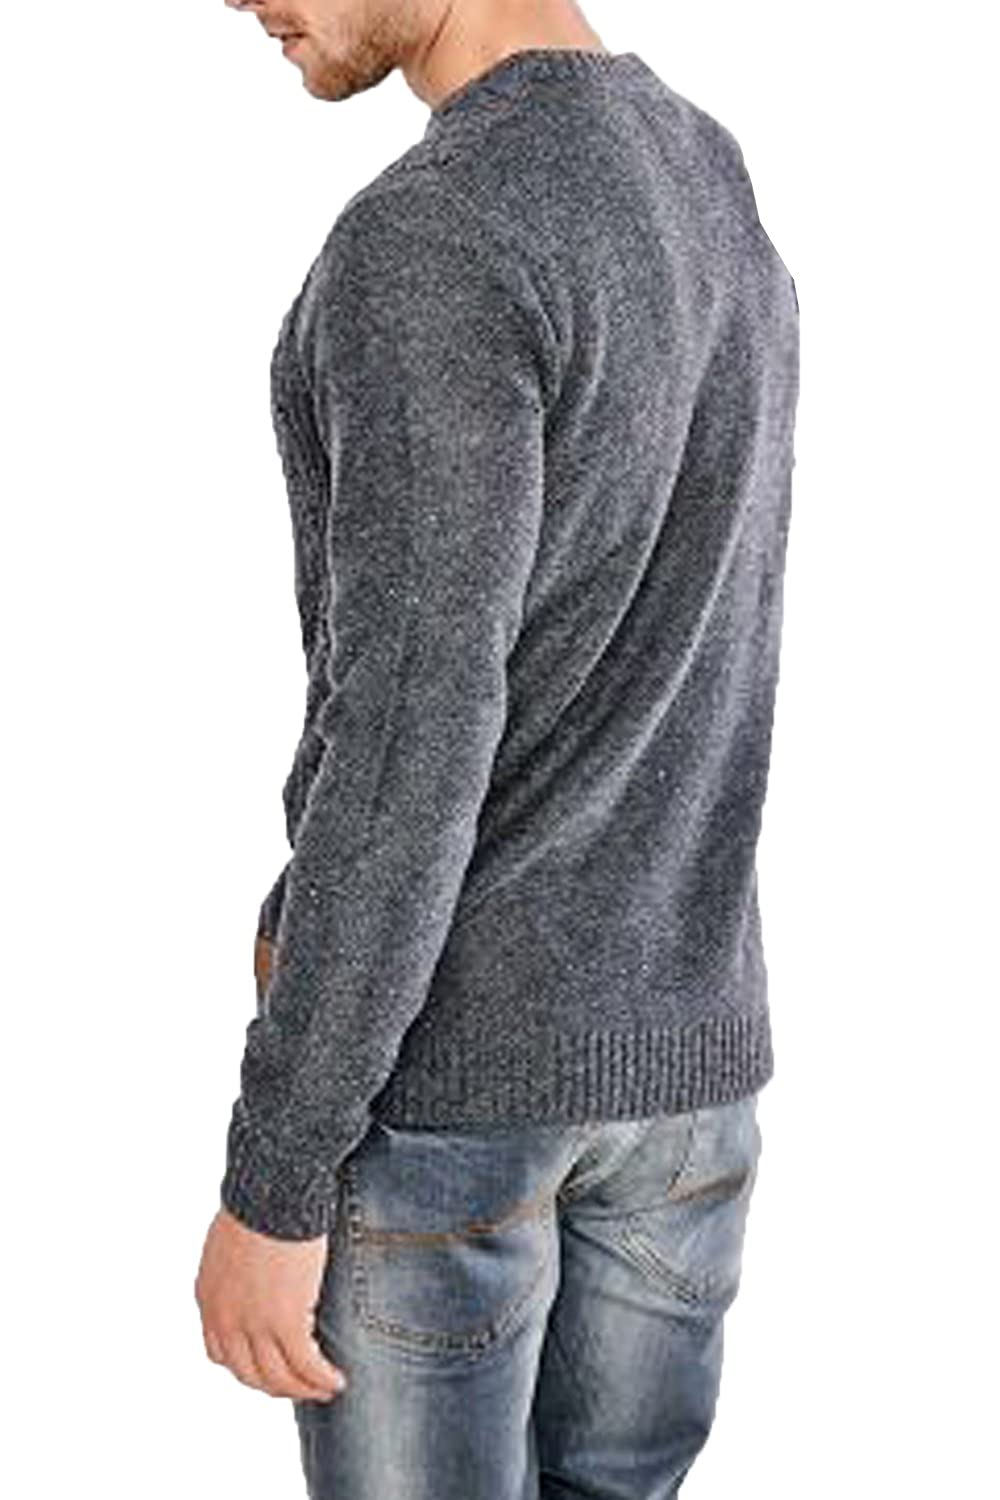 67662afaad89b9 Threadbare Talbot Mens Classic Cable Crew Neckline Sweater Soft Warm  Pullover Top: Amazon.co.uk: Clothing